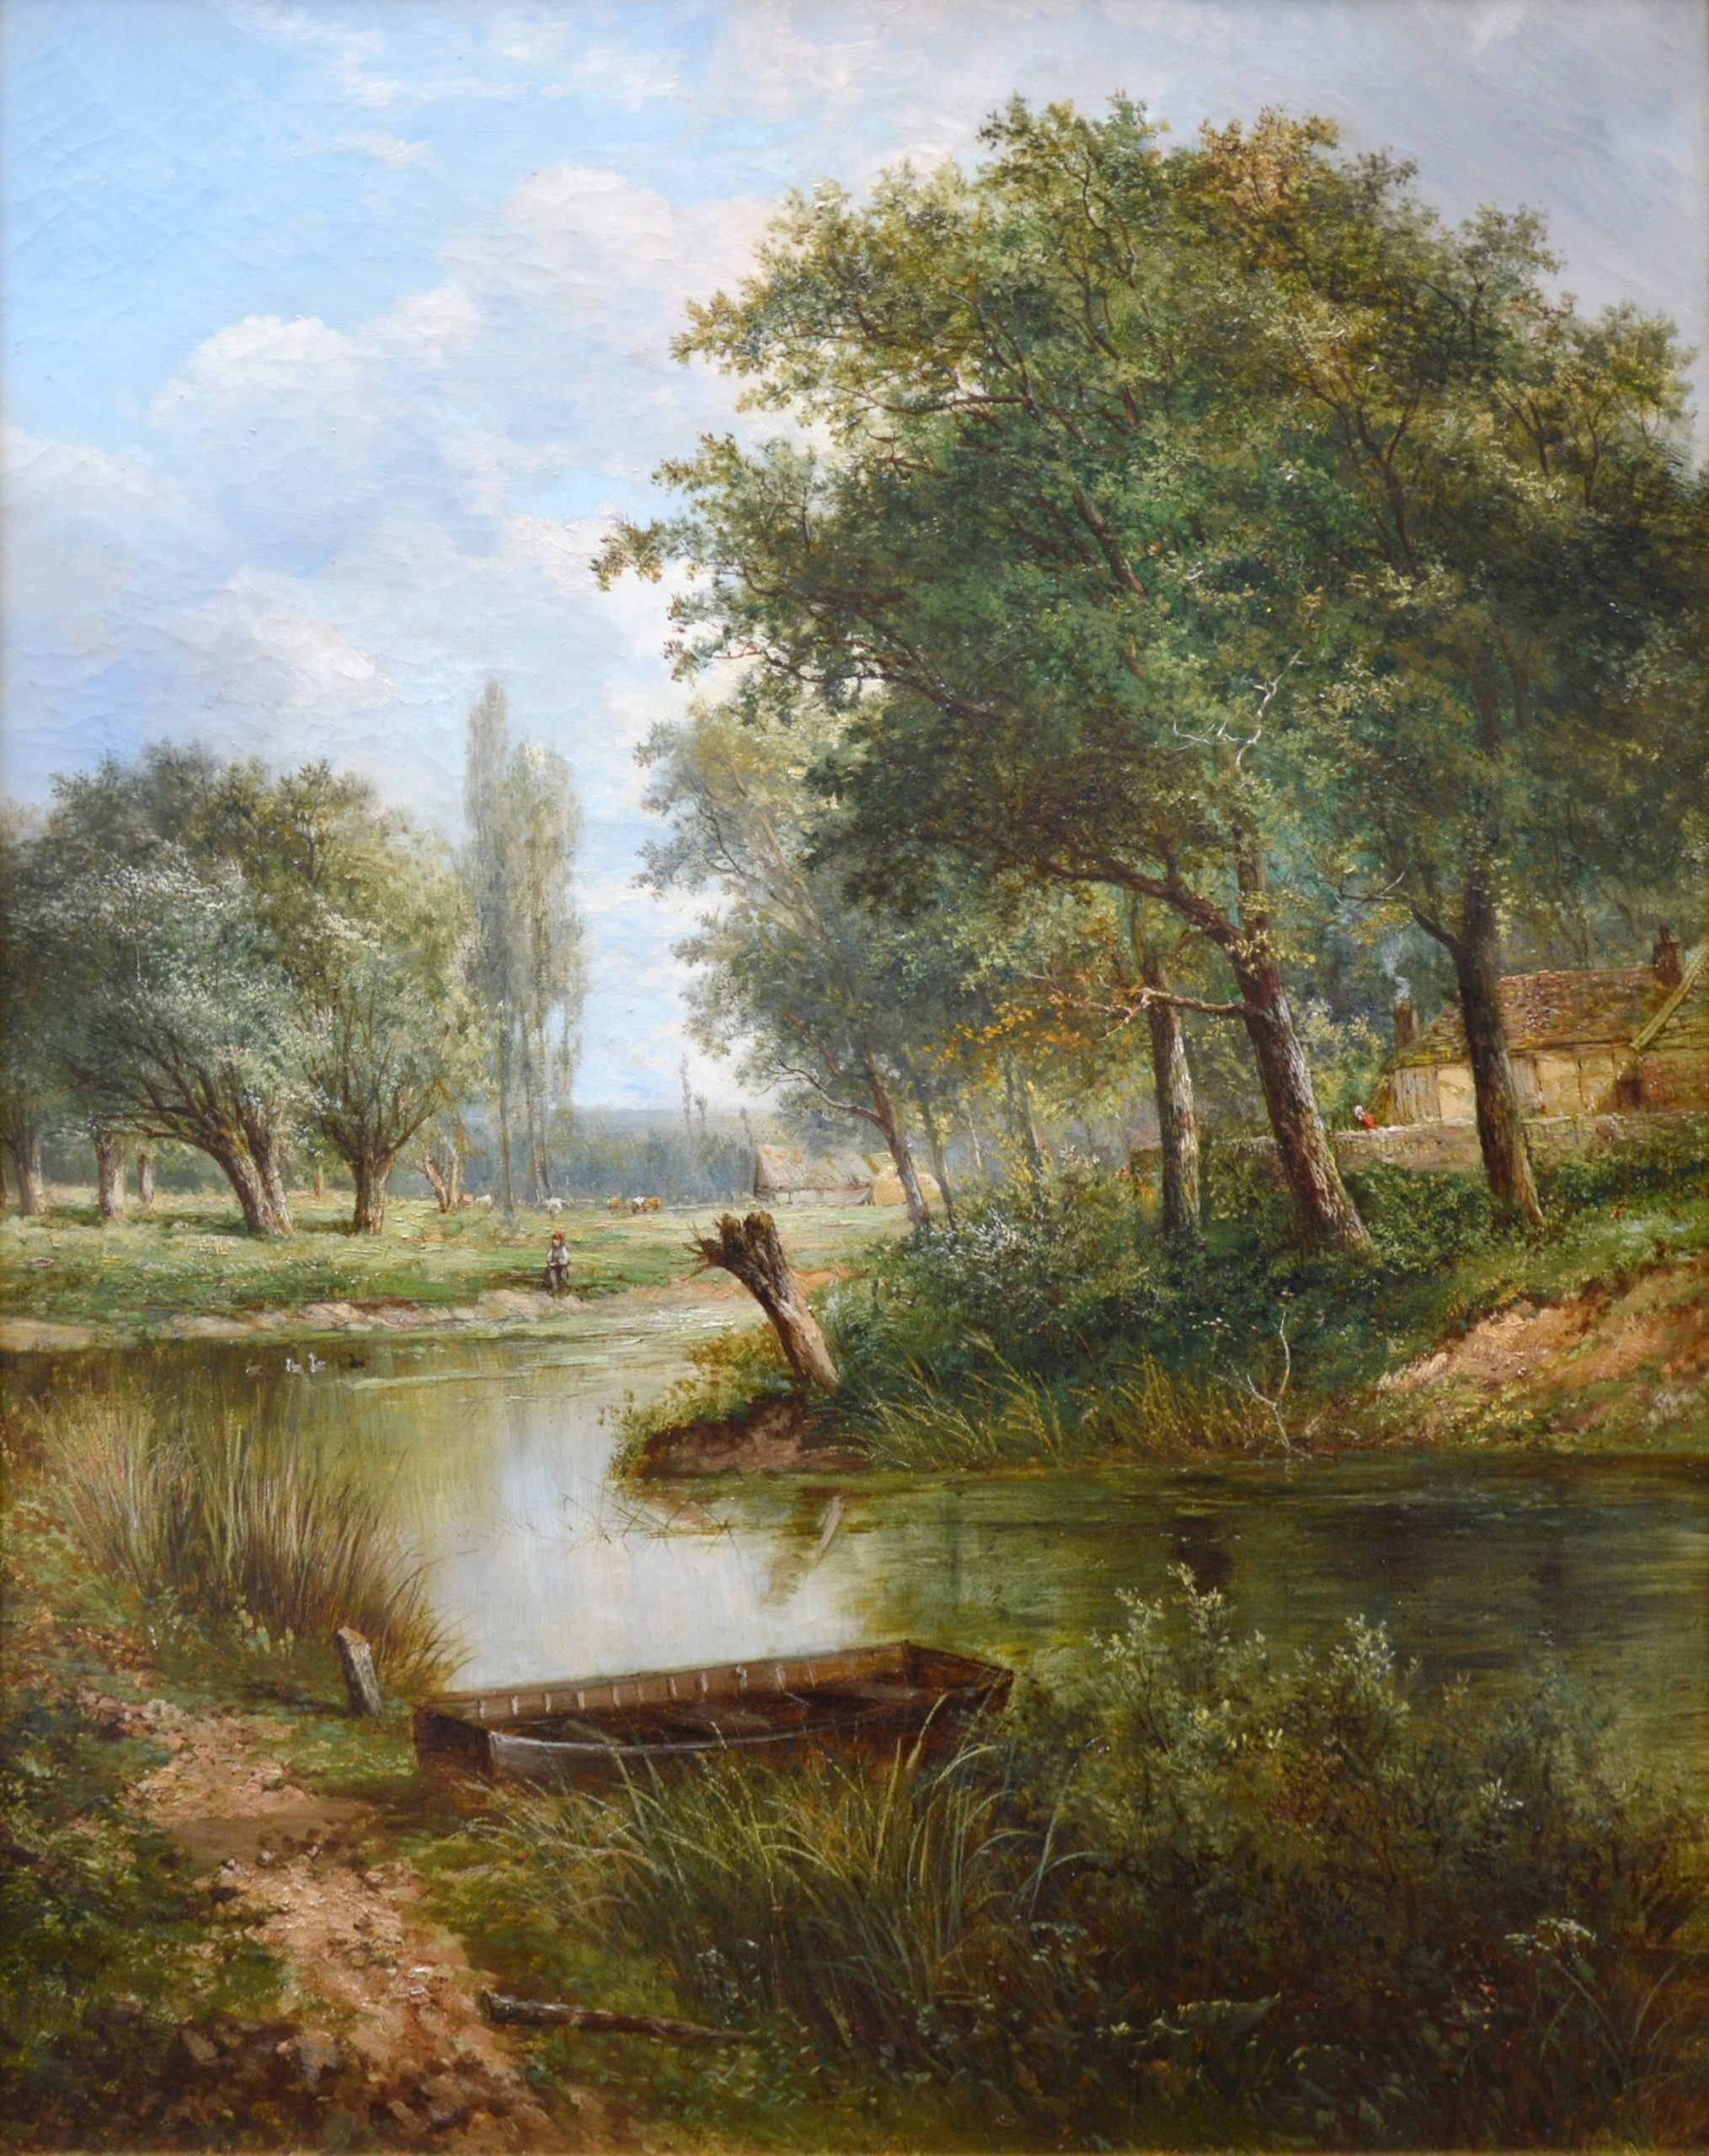 On the Thames near Dorchester - 19th Century Landscape Oil Painting Image